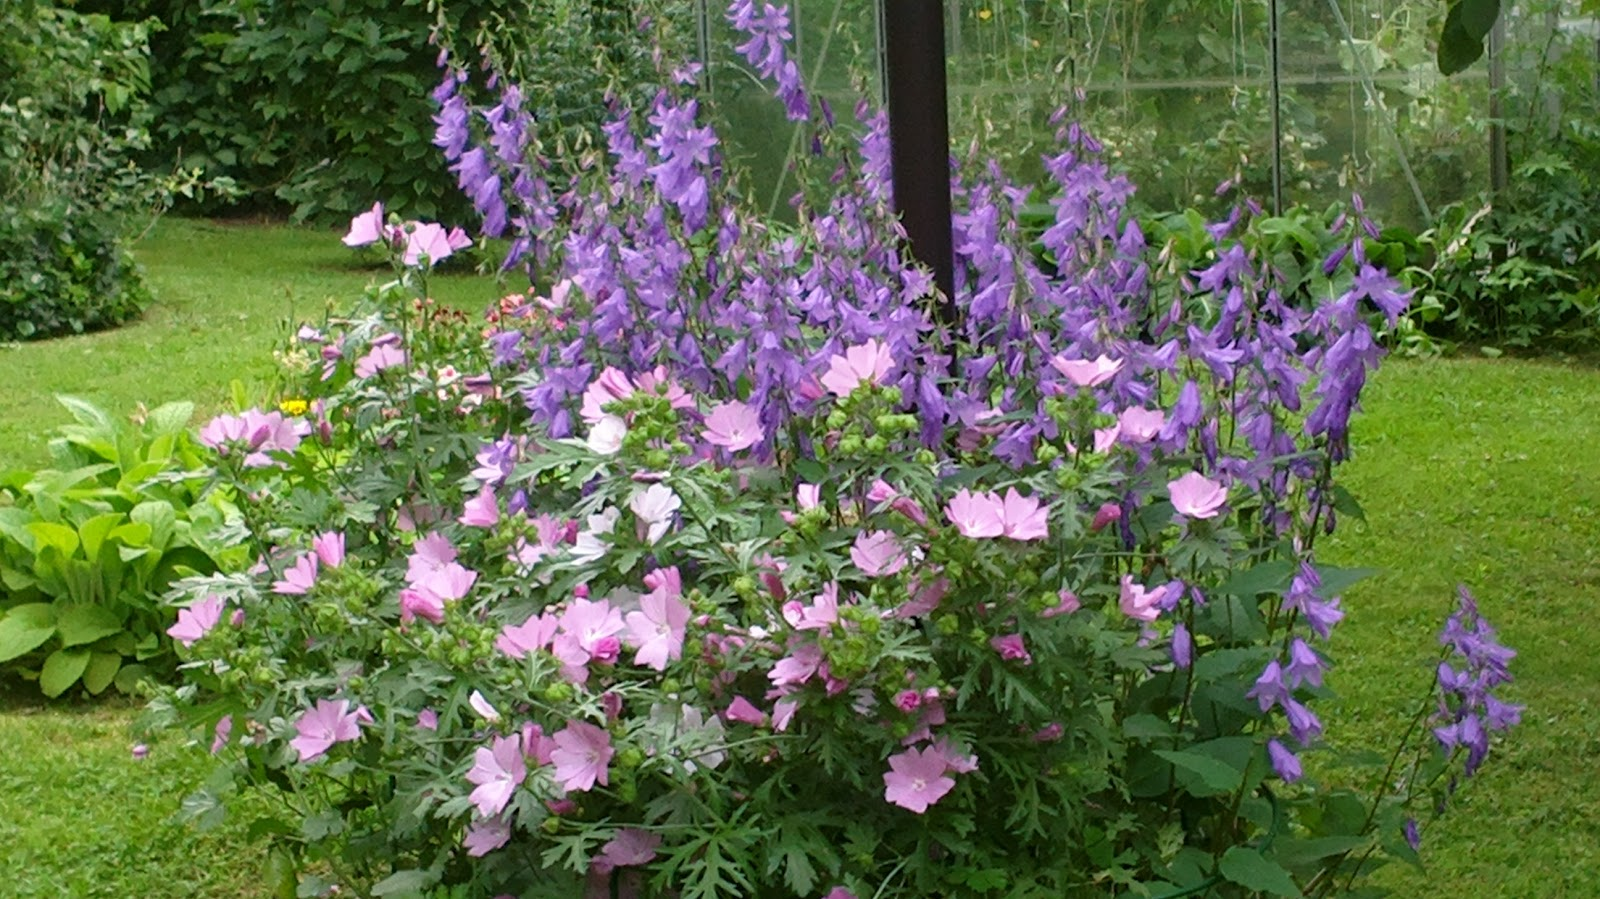 Malvat ja vuohenkellot kukkivat – Mallows and bellflowers are blooming